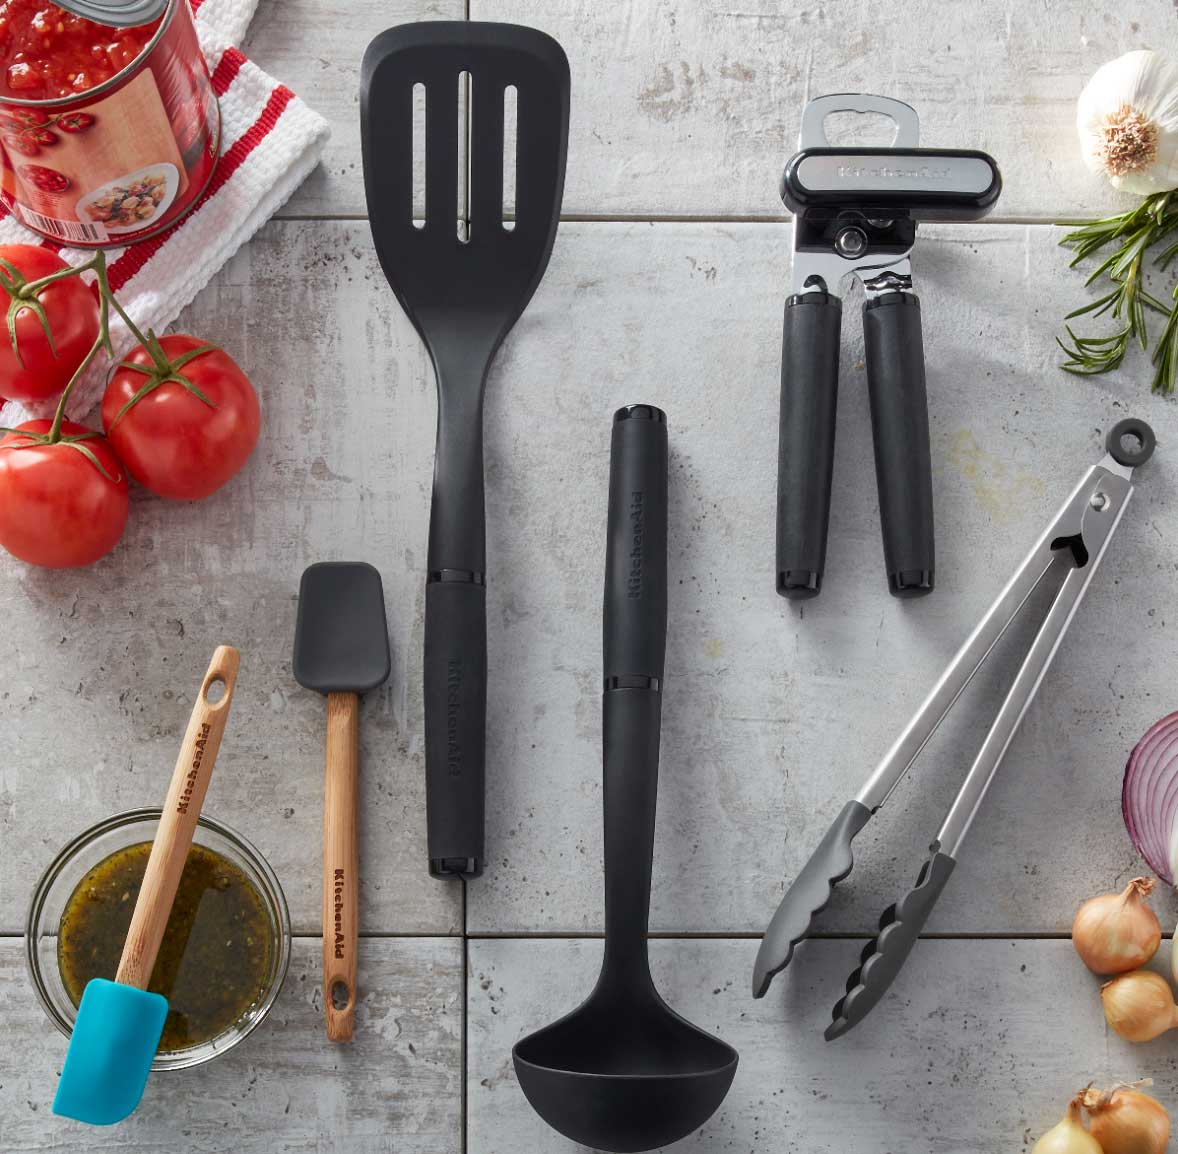 walmart-kitchenaid-utensils-main.jpg